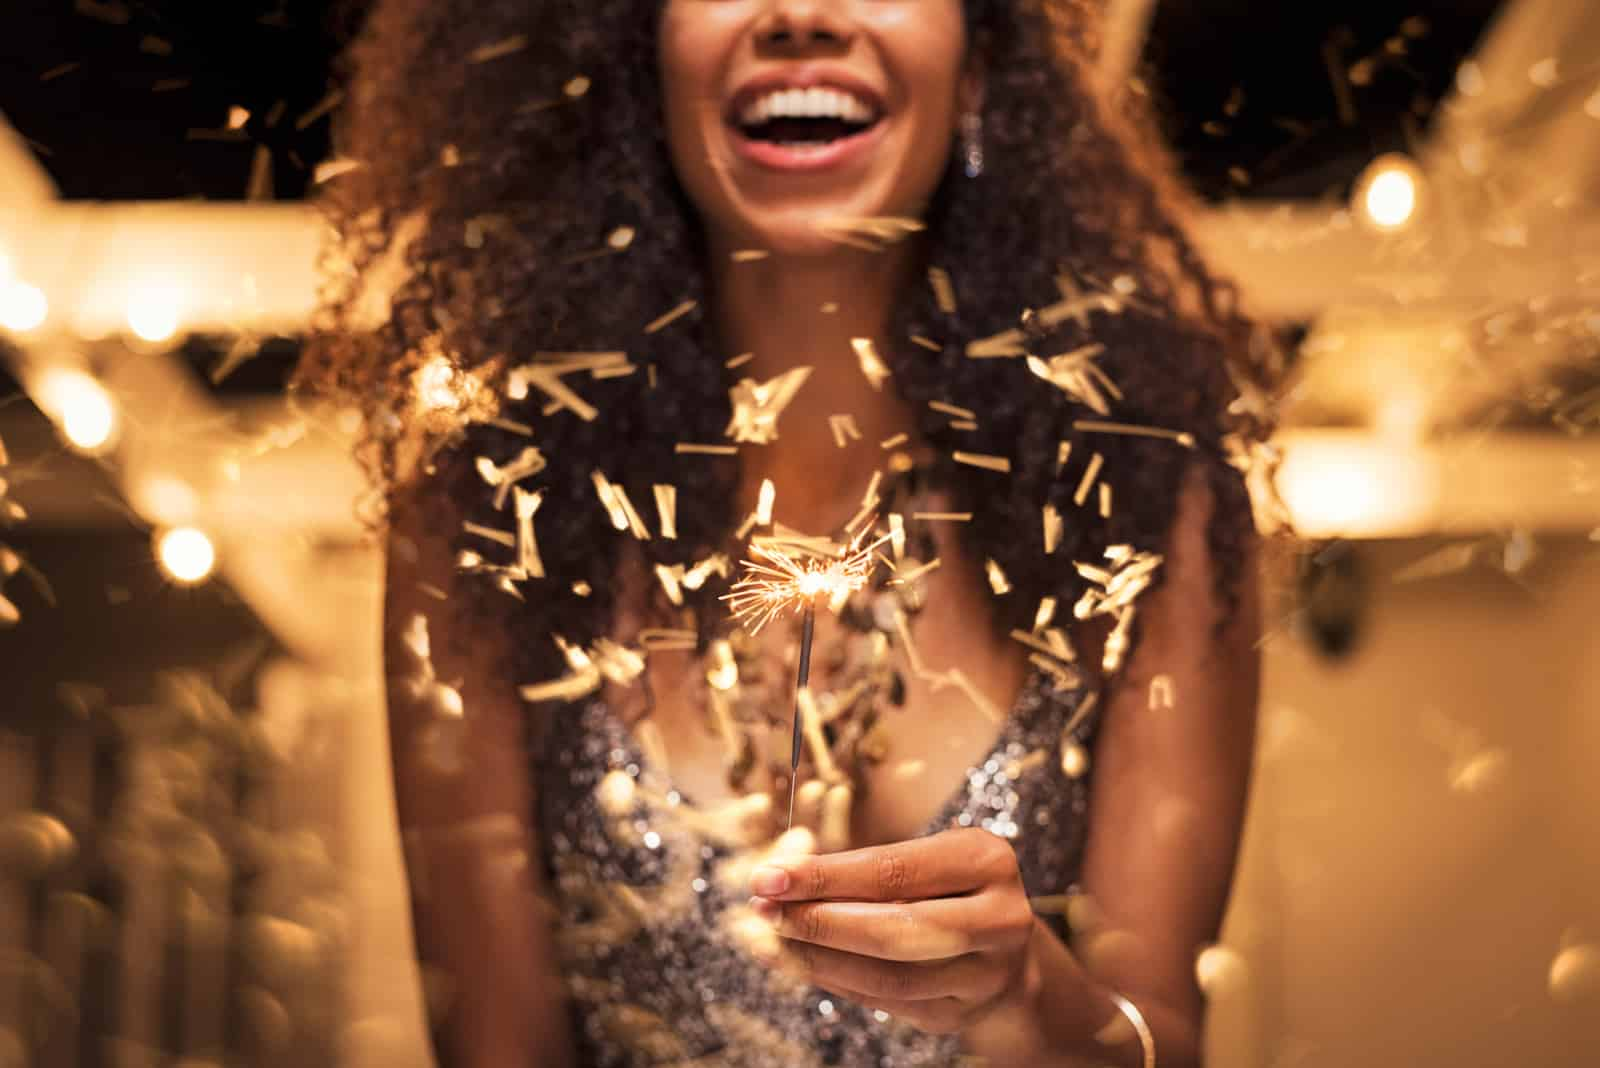 Cheerful young woman holding a sparkler